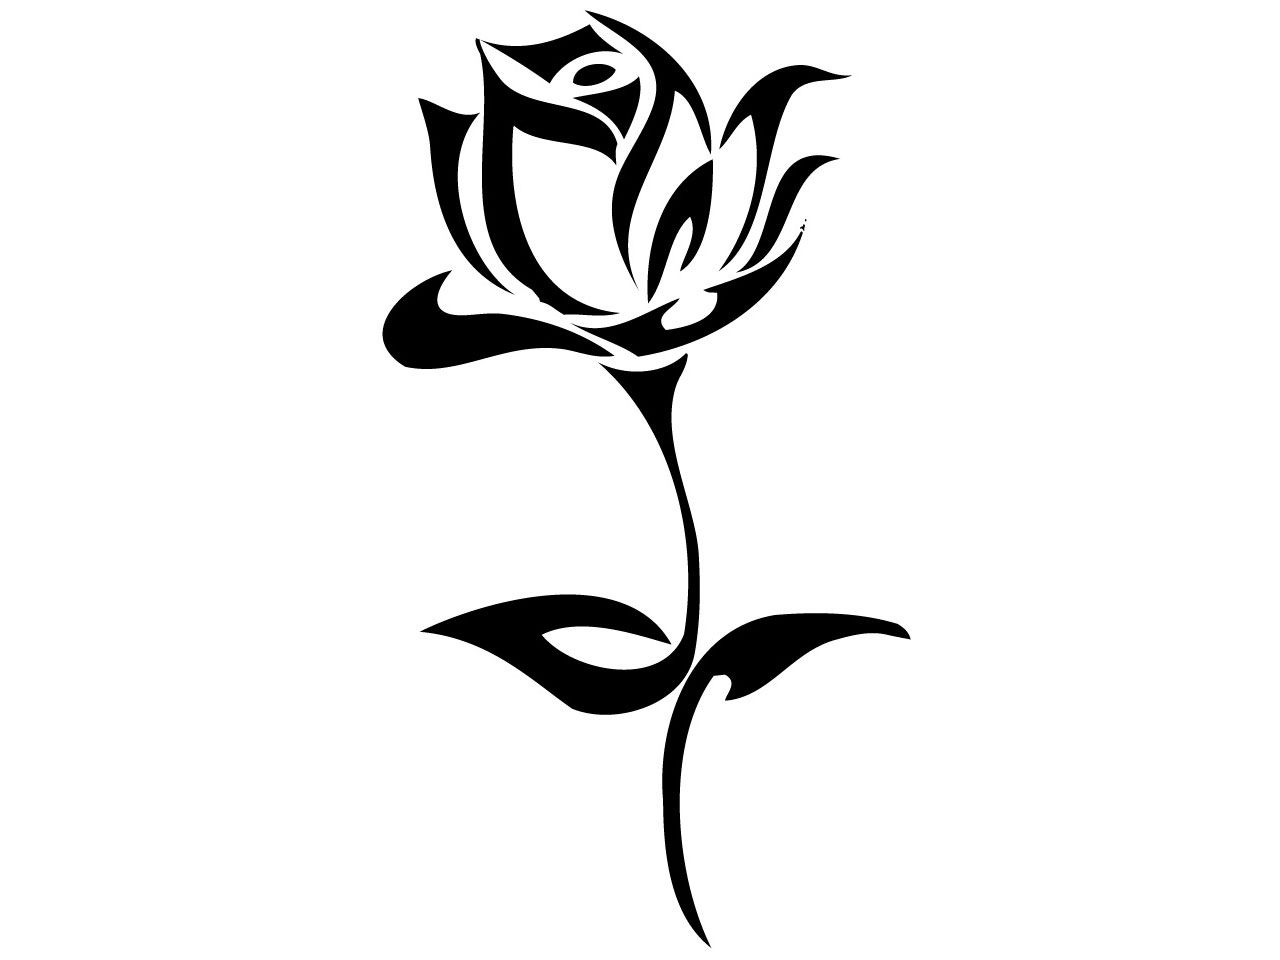 Black And White Flower Tattoo Tribal Rose Tribal Rose Tattoos Rose Tattoo Design